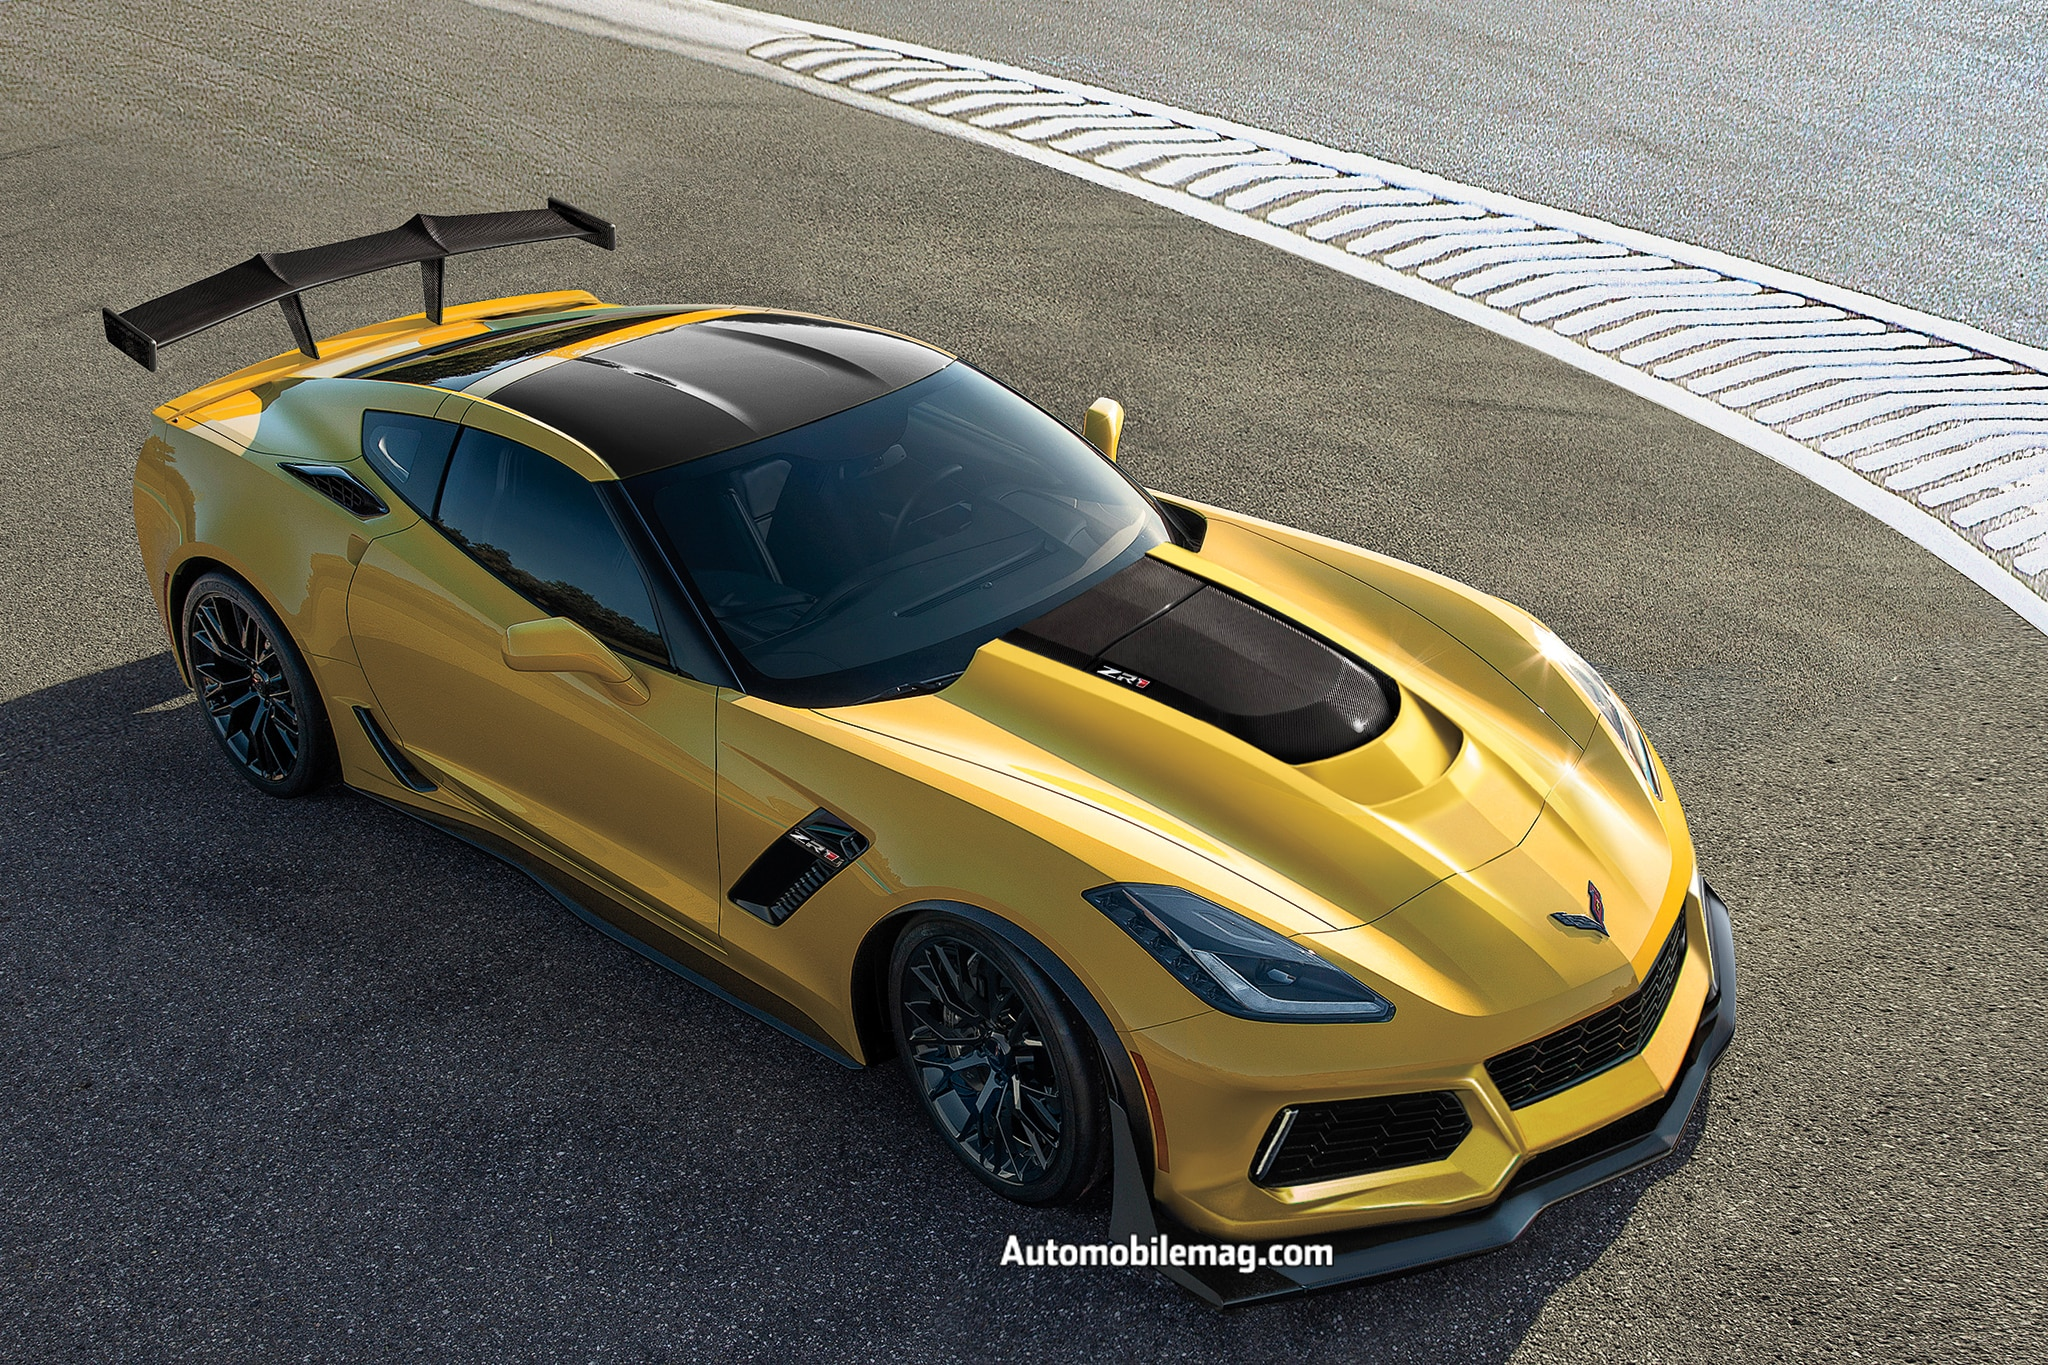 2019 Chevrolet Corvette C8 Quot Zora Quot And C7 Zr1 What To